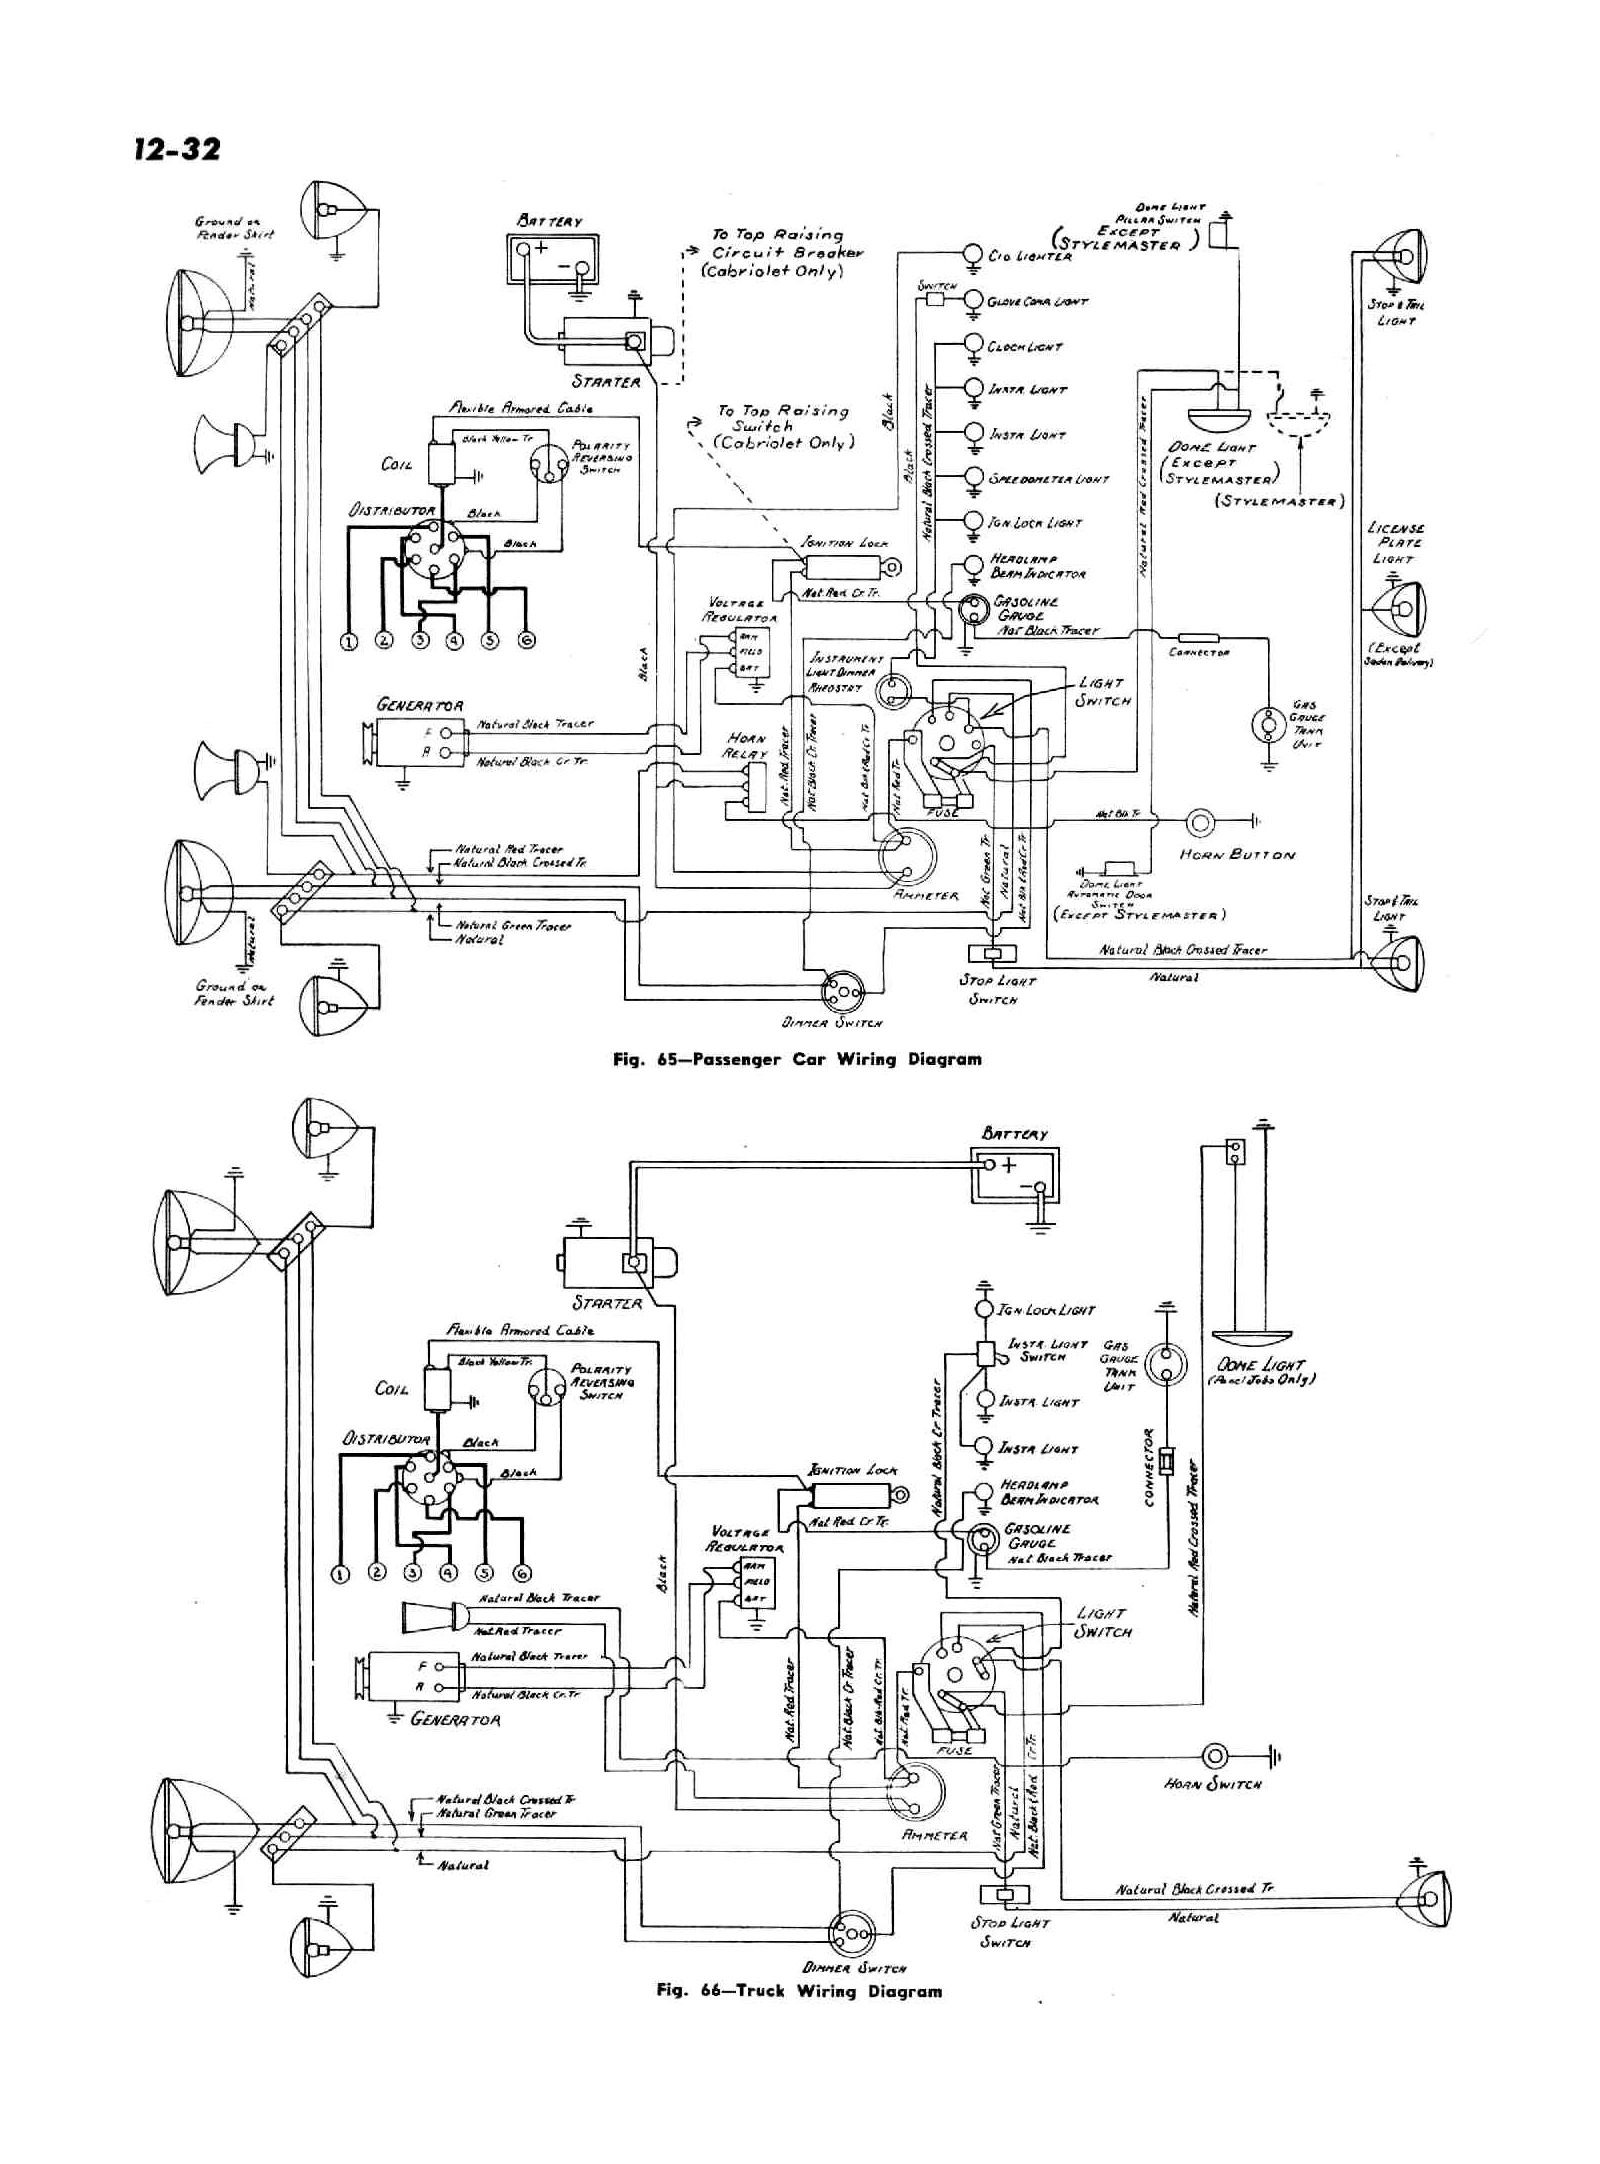 [WRG-4699] 1970 Nova Engine Wiring Diagram